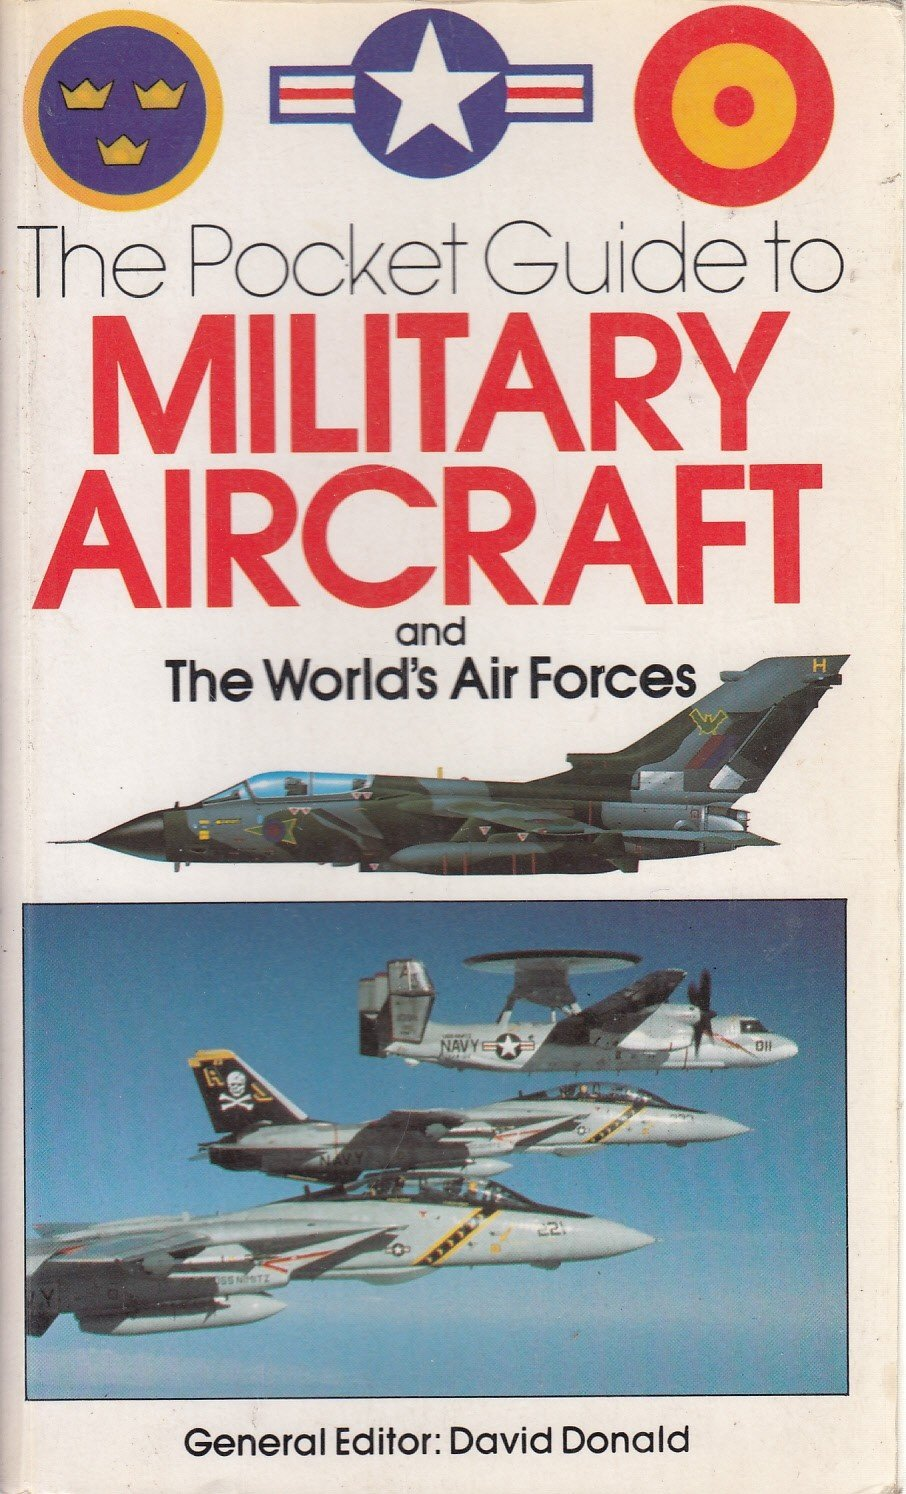 The Pocket Guide to Military Aircraft and the World's Air Forces